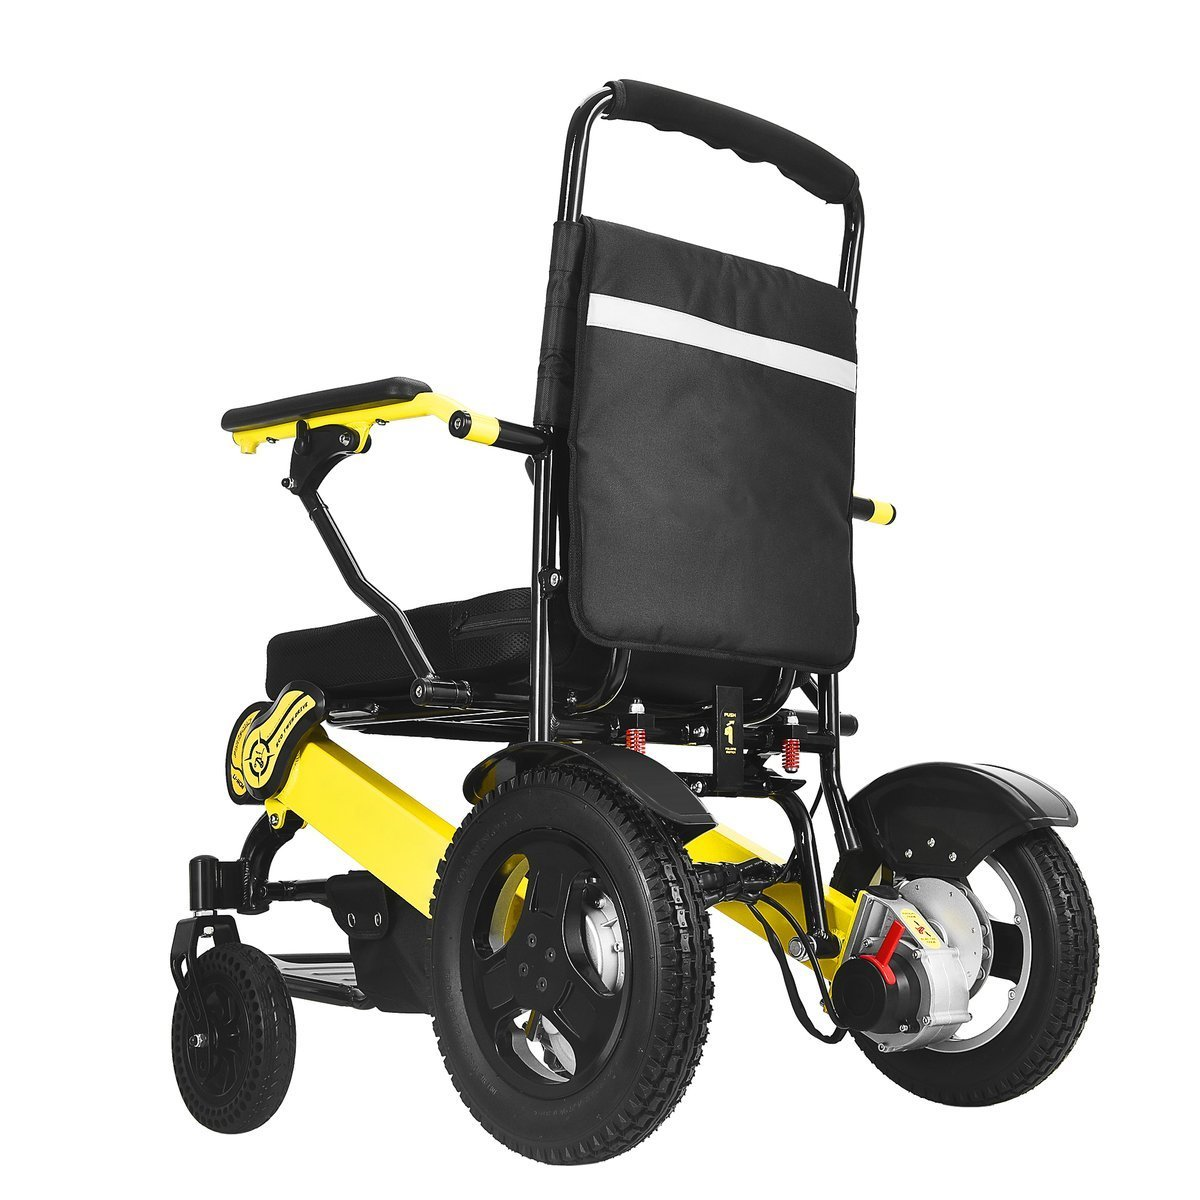 Foldable Sturdy Dual Motorized Powerful Electric Wheelchair Mobility Aids Ober Health 6